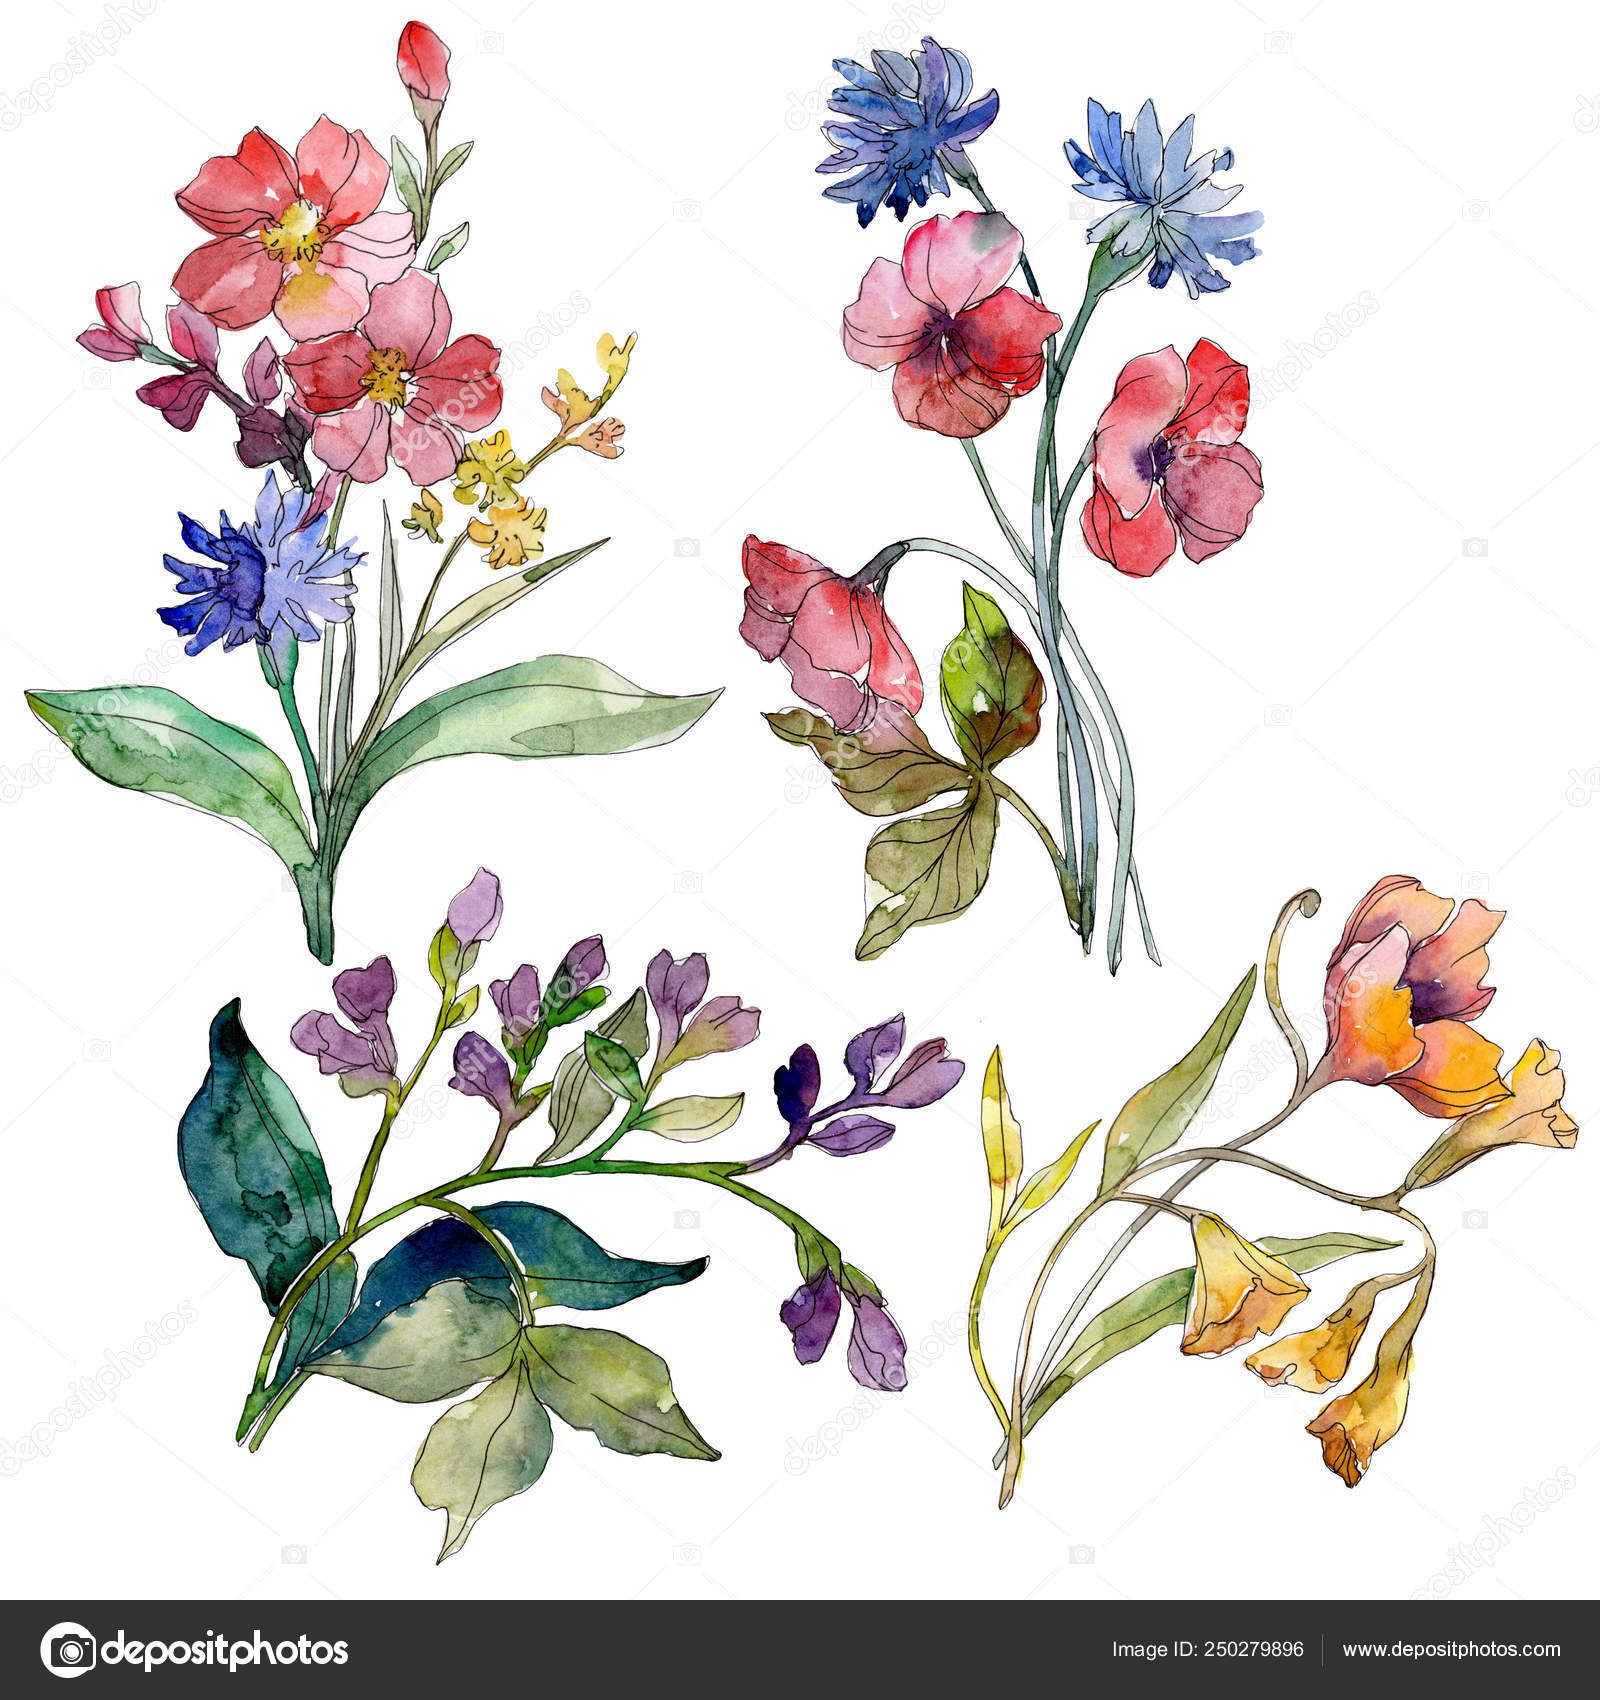 Wildflower Bouquet Floral Botanical Flowers Wild Spring Leaf Wildflower Watercolor Stock Photo Image By C Mystocks 250279896